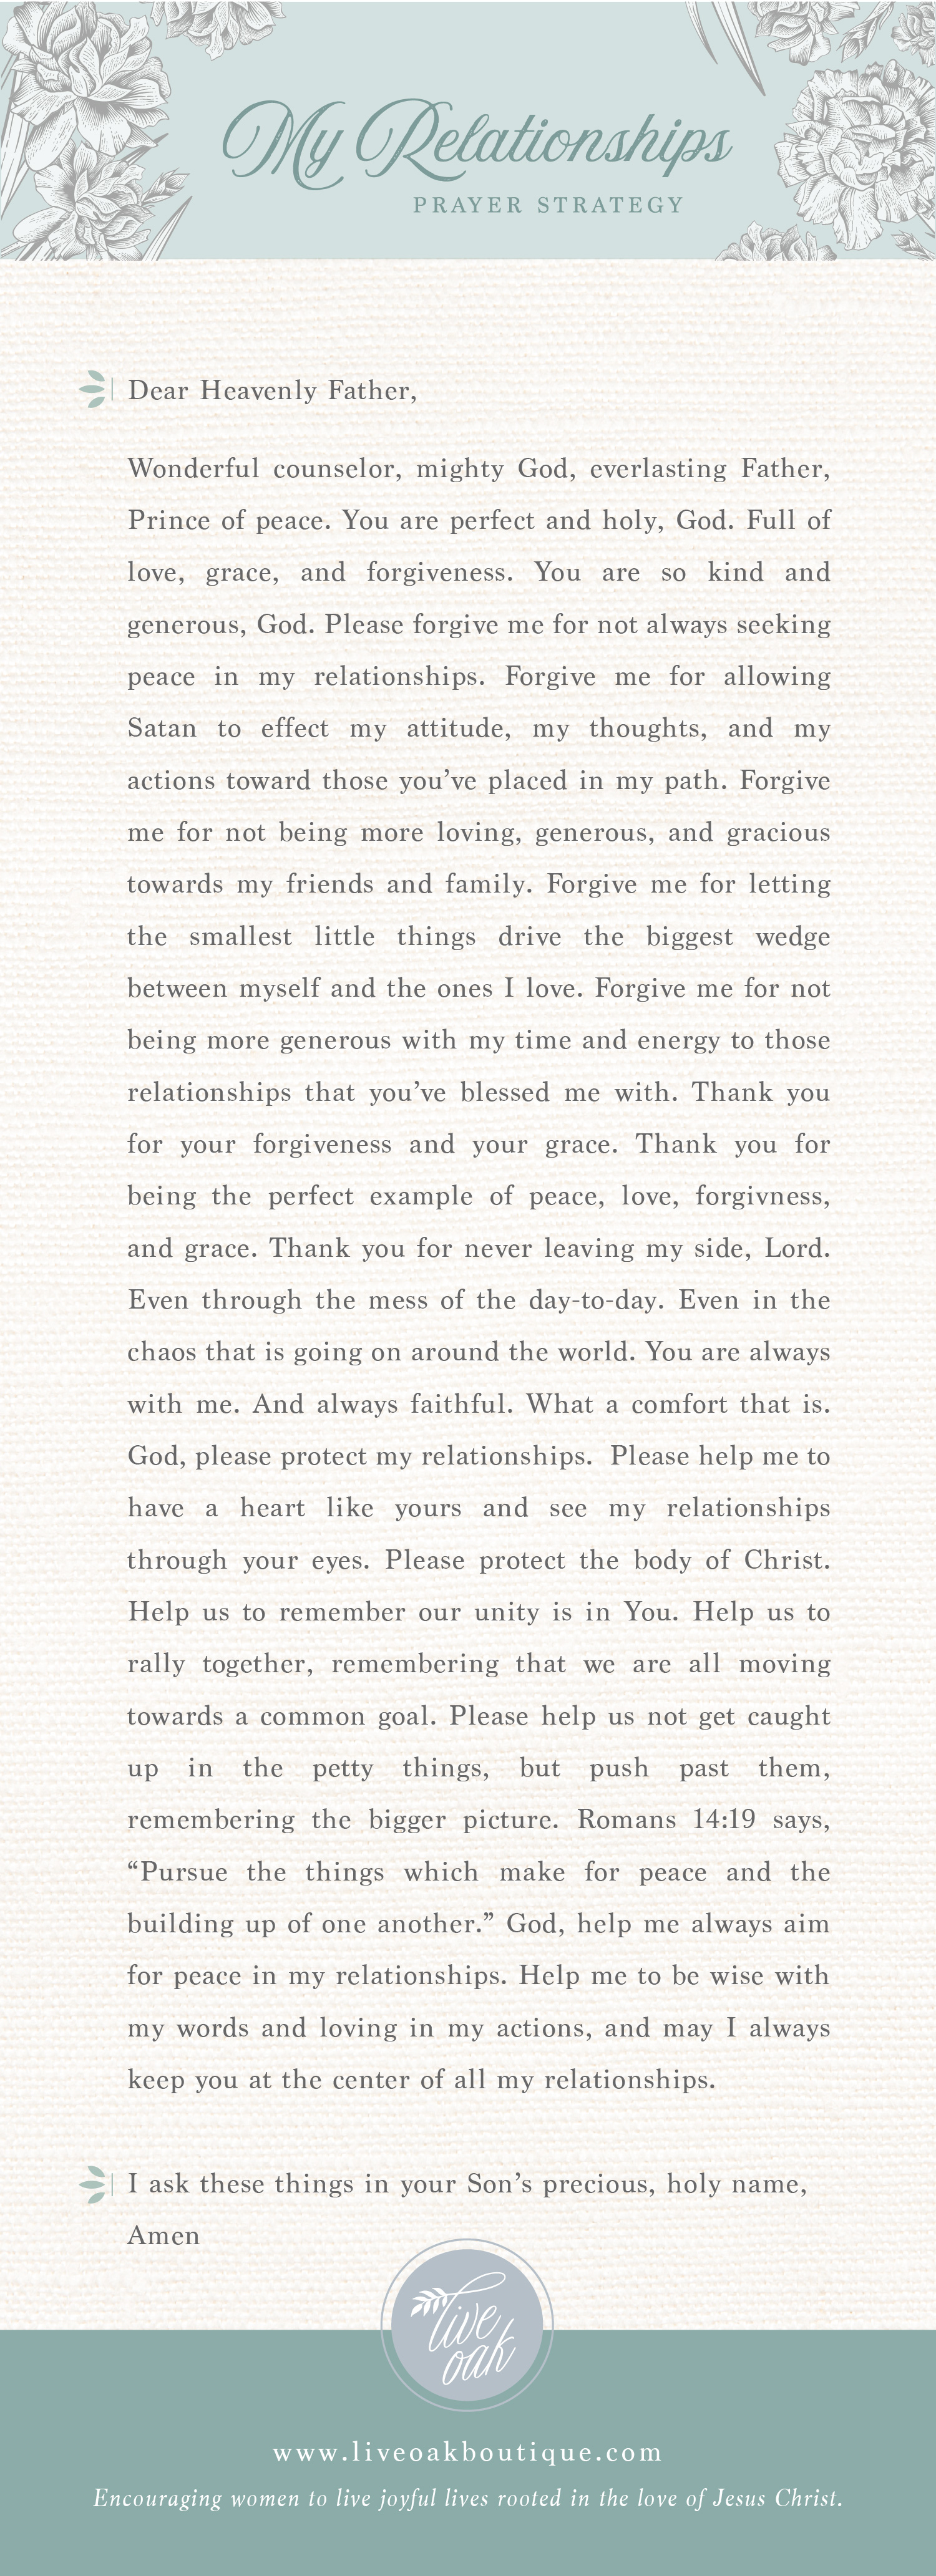 Prayer Strategy for Your Relationships from Live Oak Boutique. Stationery and gifts rooted in the love of Jesus Christ! www.liveoakboutique.com